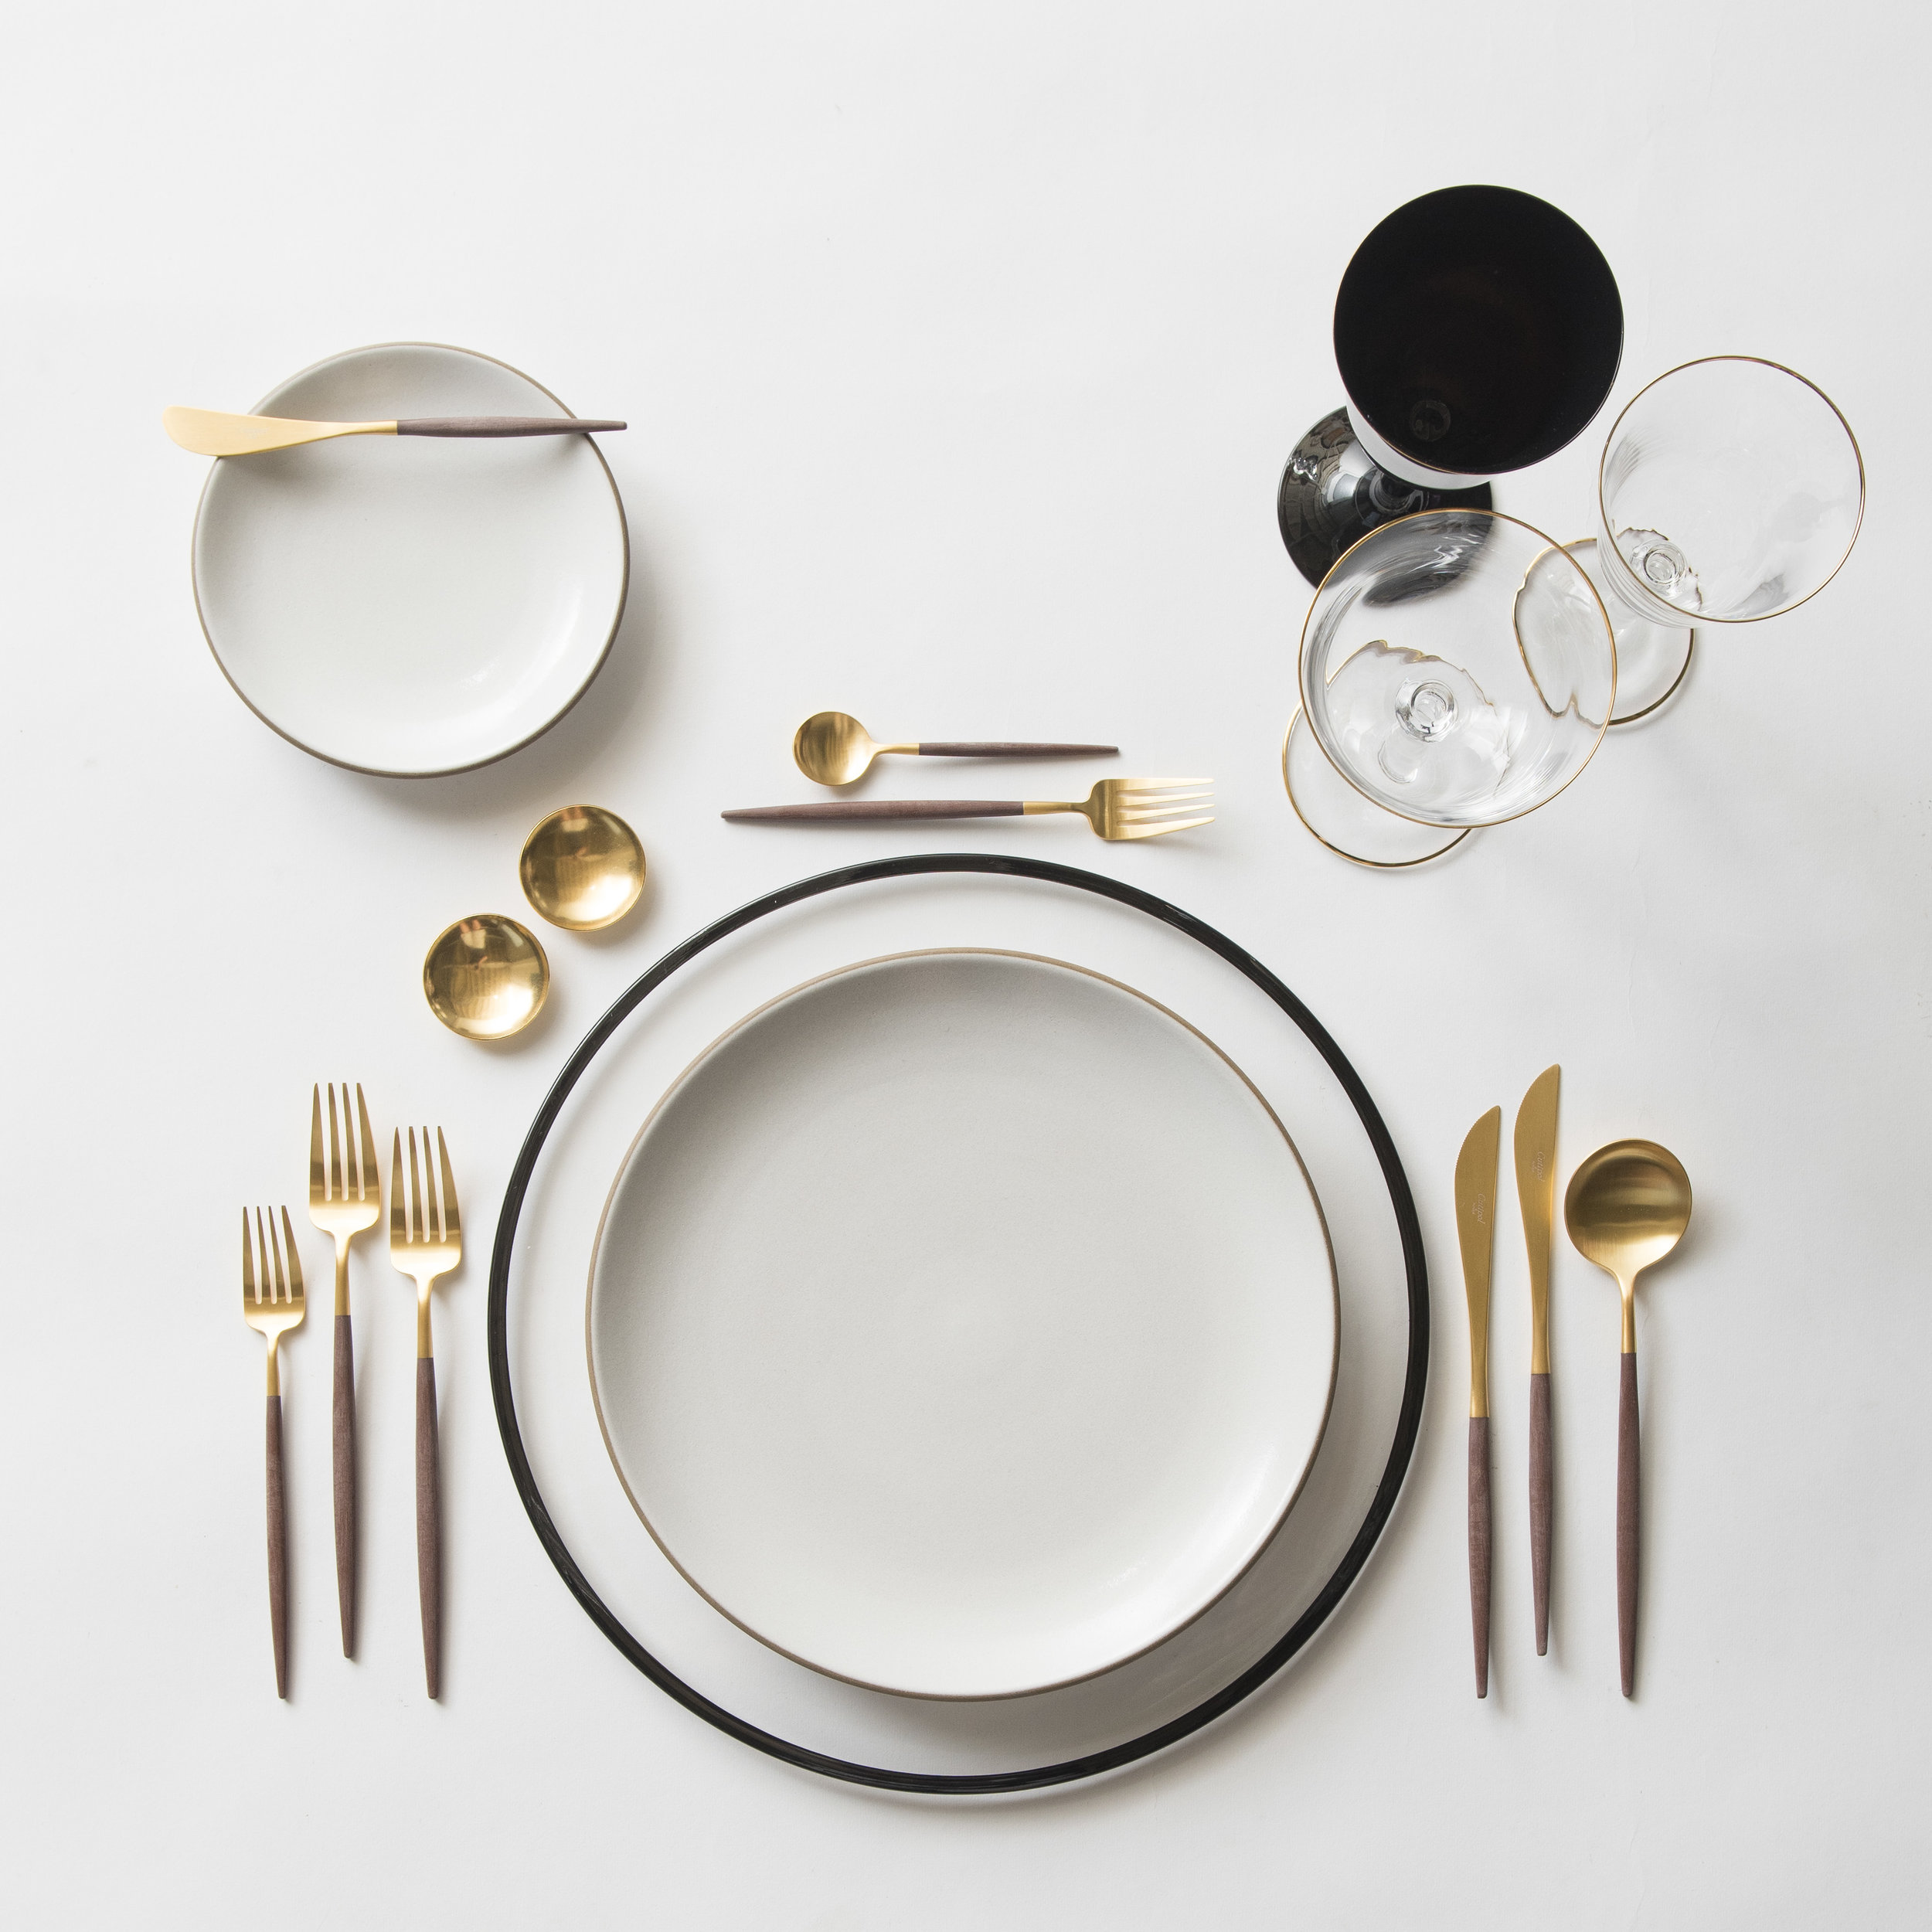 RENT: Halo Glass Chargers in Black + Heath Ceramics in Opaque White + Goa Flatware in Brushed 24k Gold/Wood + Chloe 24k Gold Rimmed Stemware + Chloe 24k Gold Rimmed Goblet in Black + 14k Gold Salt Cellars + Tiny Gold Spoons   SHOP: Halo Glass Chargers in Black + Goa Flatware in Brushed 24k Gold/Wood + Chloe 24k Gold Rimmed Stemware + 14k Gold Salt Cellars + Tiny Gold Spoons